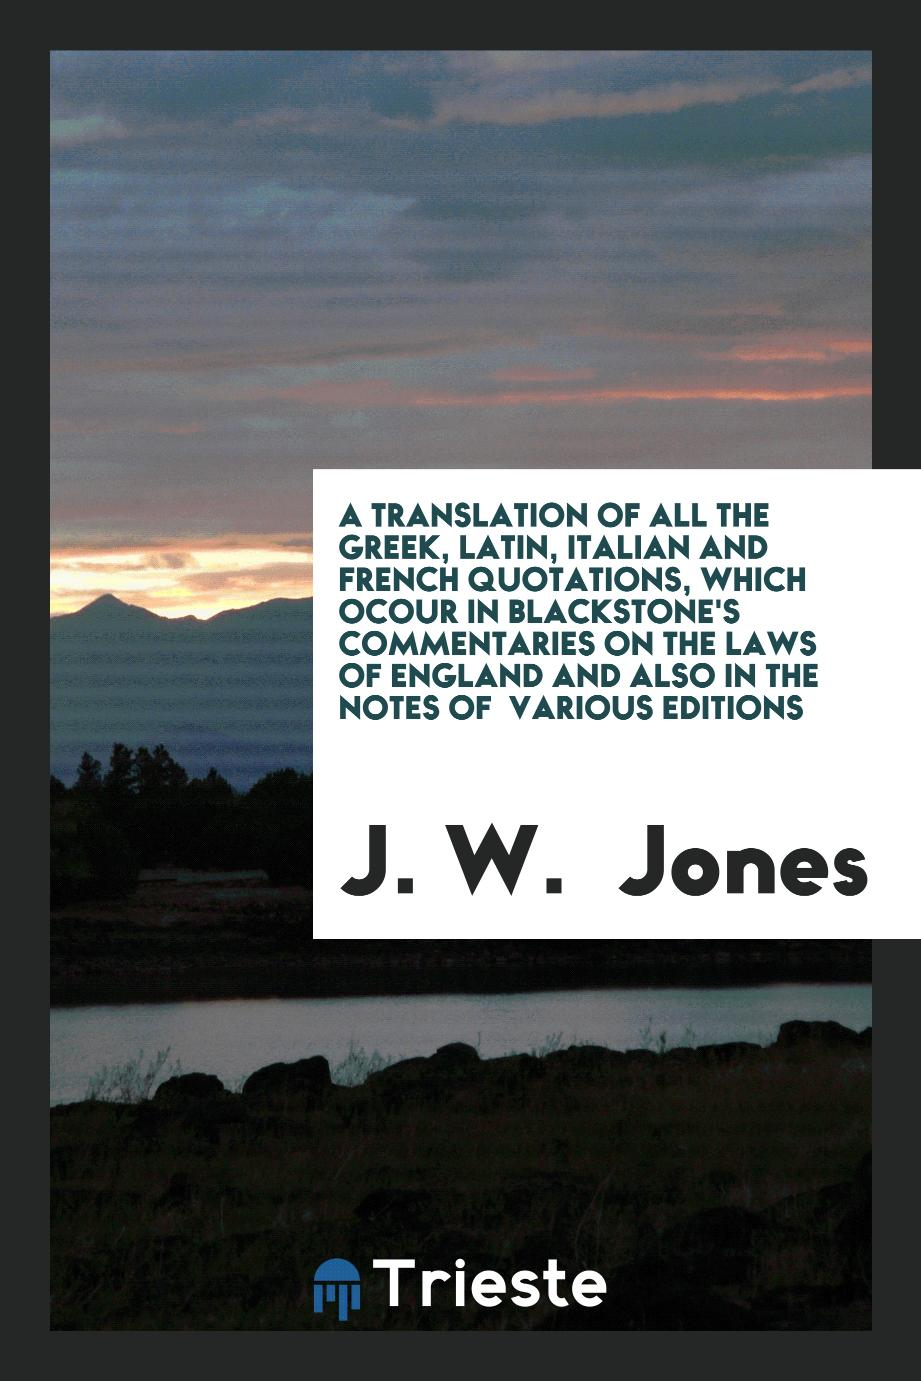 J. W.  Jones - A Translation of All the Greek, Latin, Italian and French Quotations, Which Ocour in Blackstone's Commentaries on the Laws of England and Also in the Notes of Various Editions